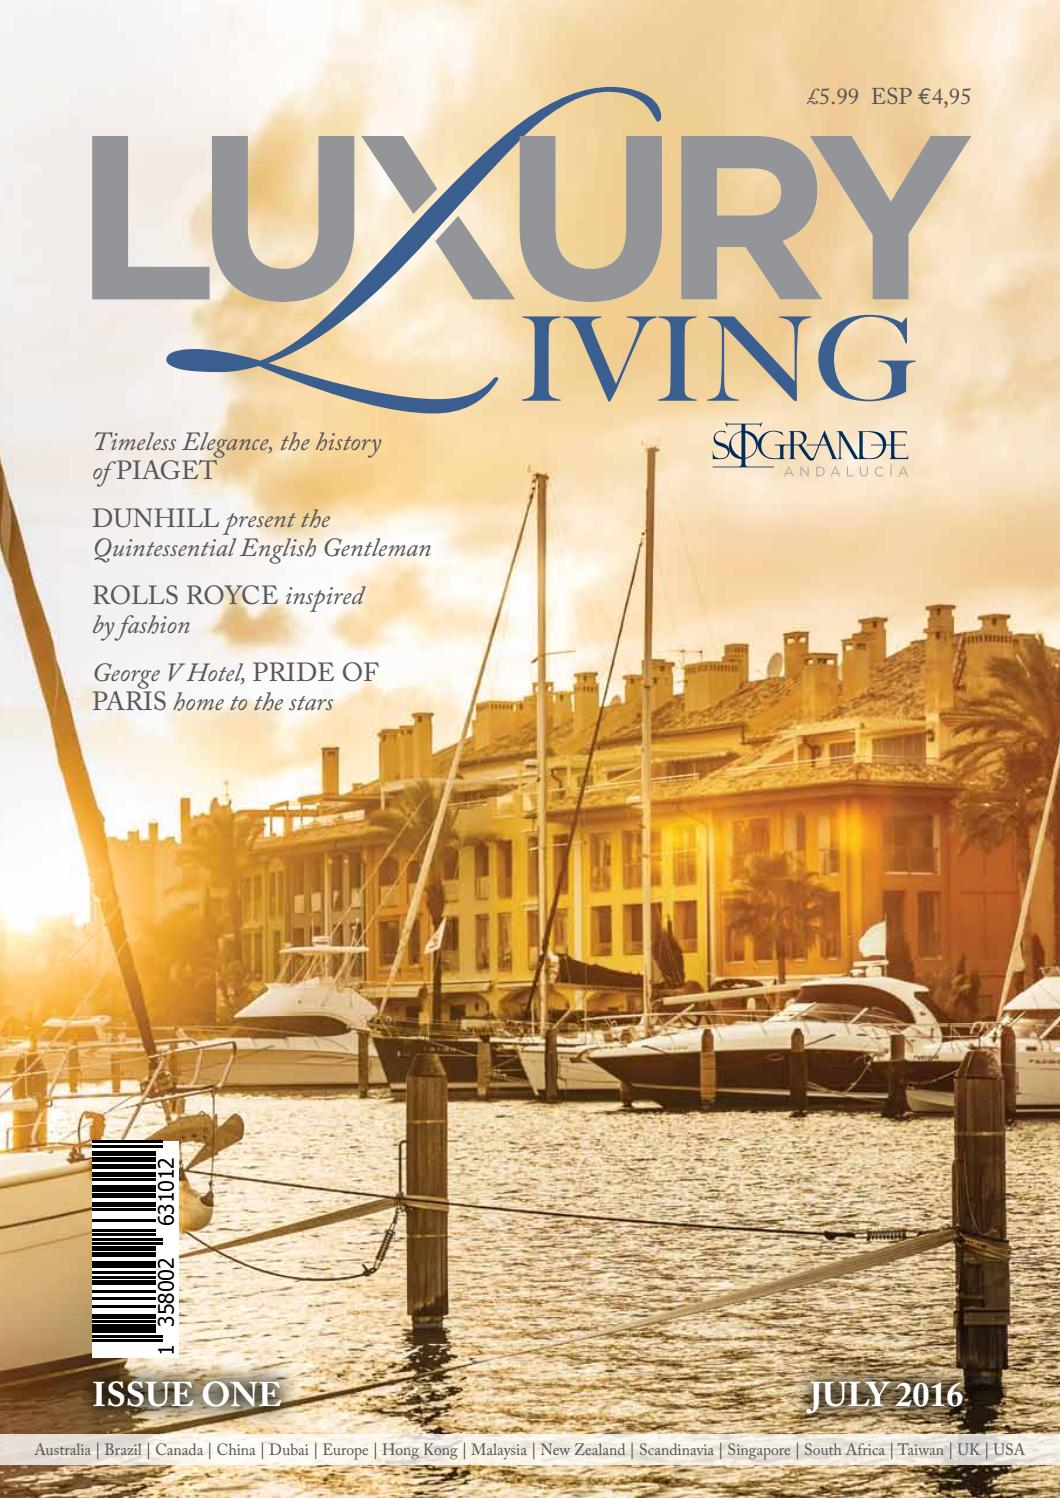 Luxury Living Magazine by ClearVision Marketing - issuu 0c70aed37ee7